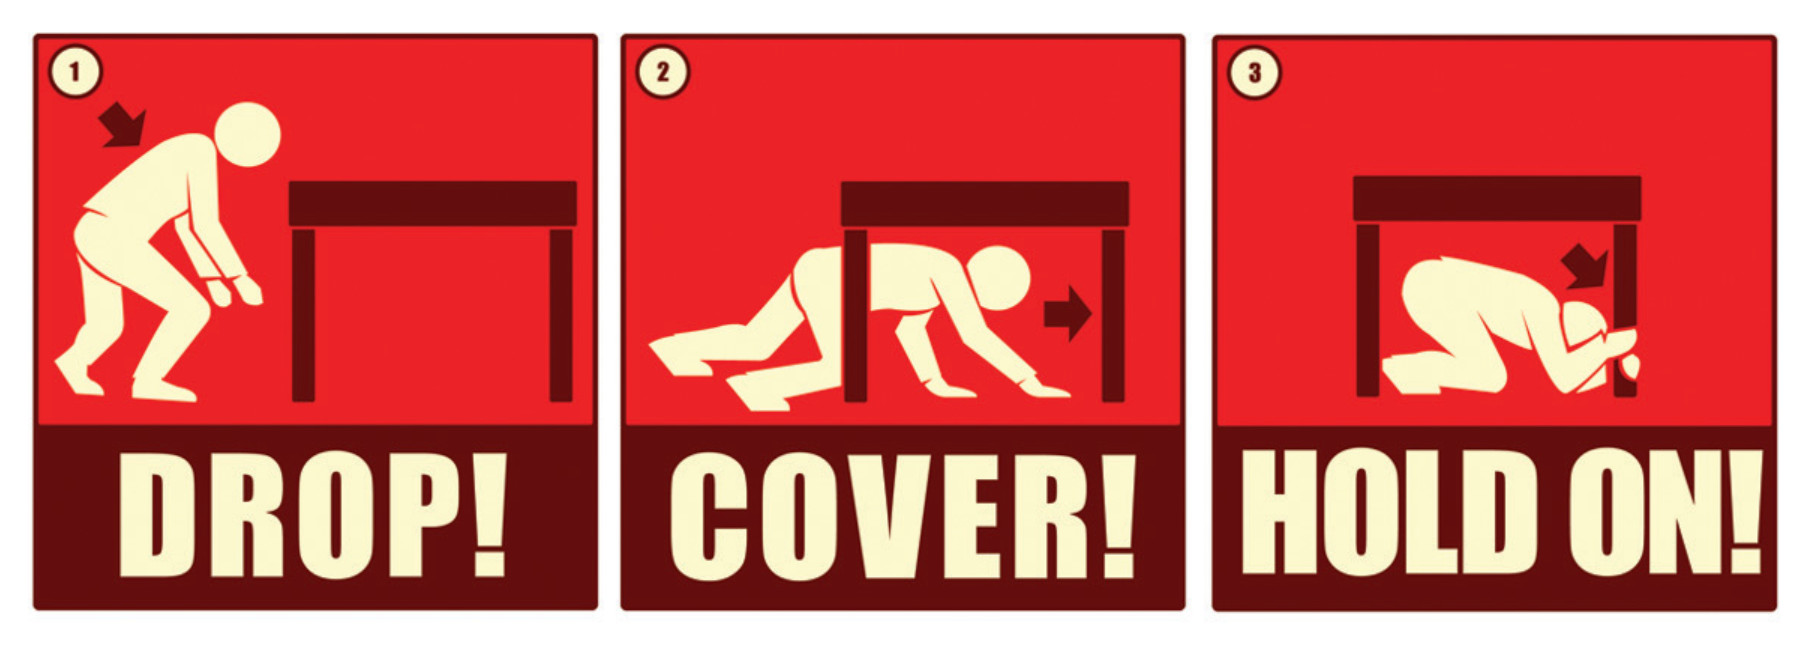 ShakeOut Drop Cover Hold